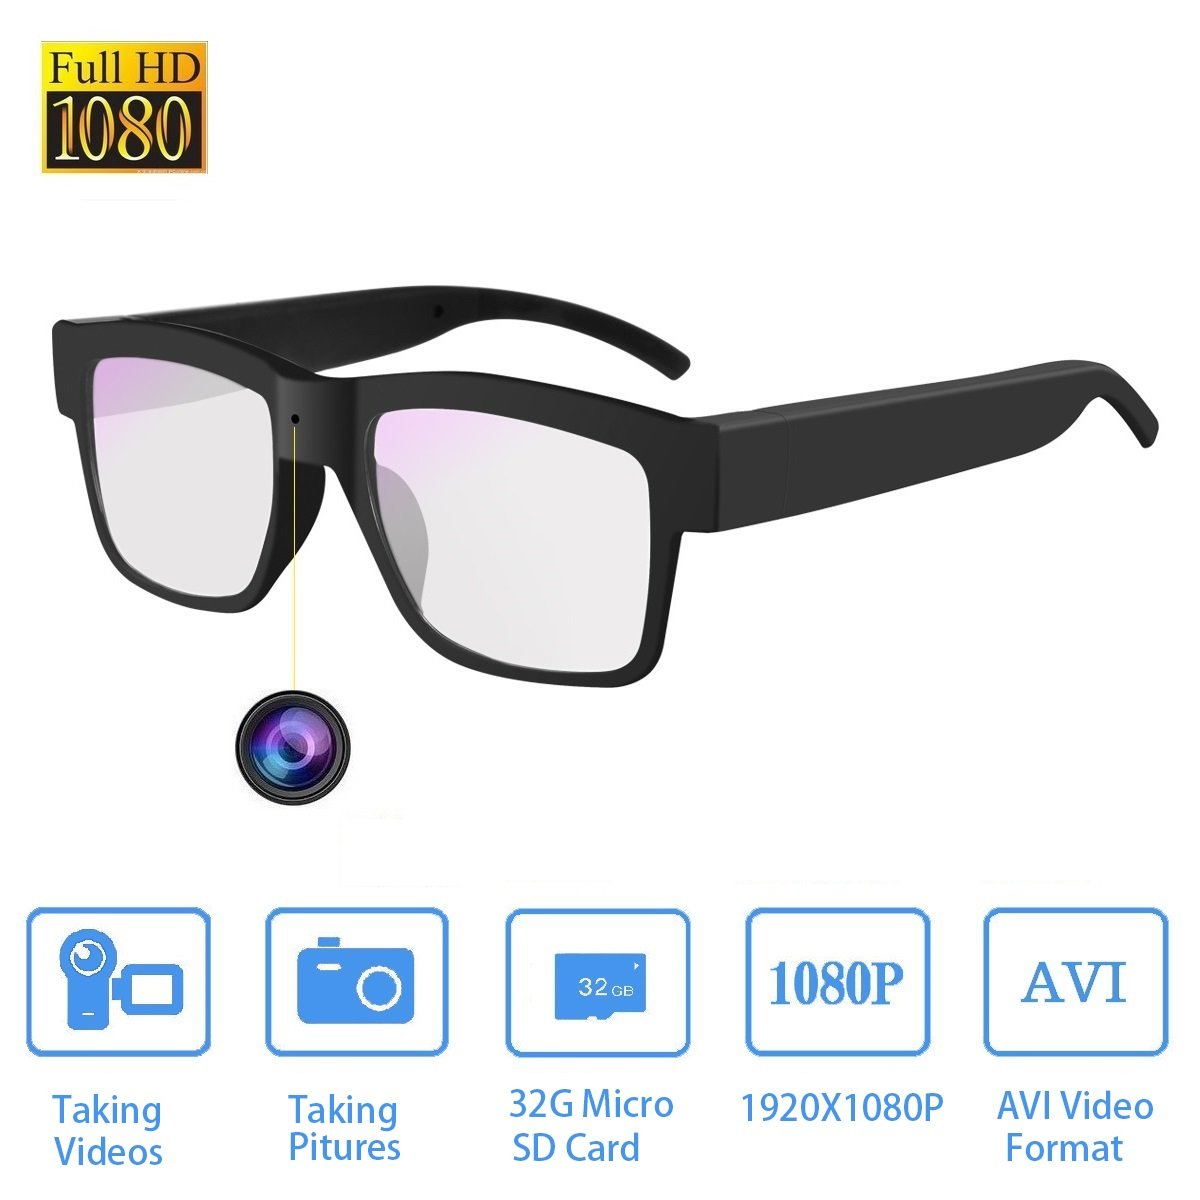 Camera Glasses HD 1080P,Towero Hidden Spy Camera Glasses for Work/Outdoor/Training/Teaching/Kids/Pets